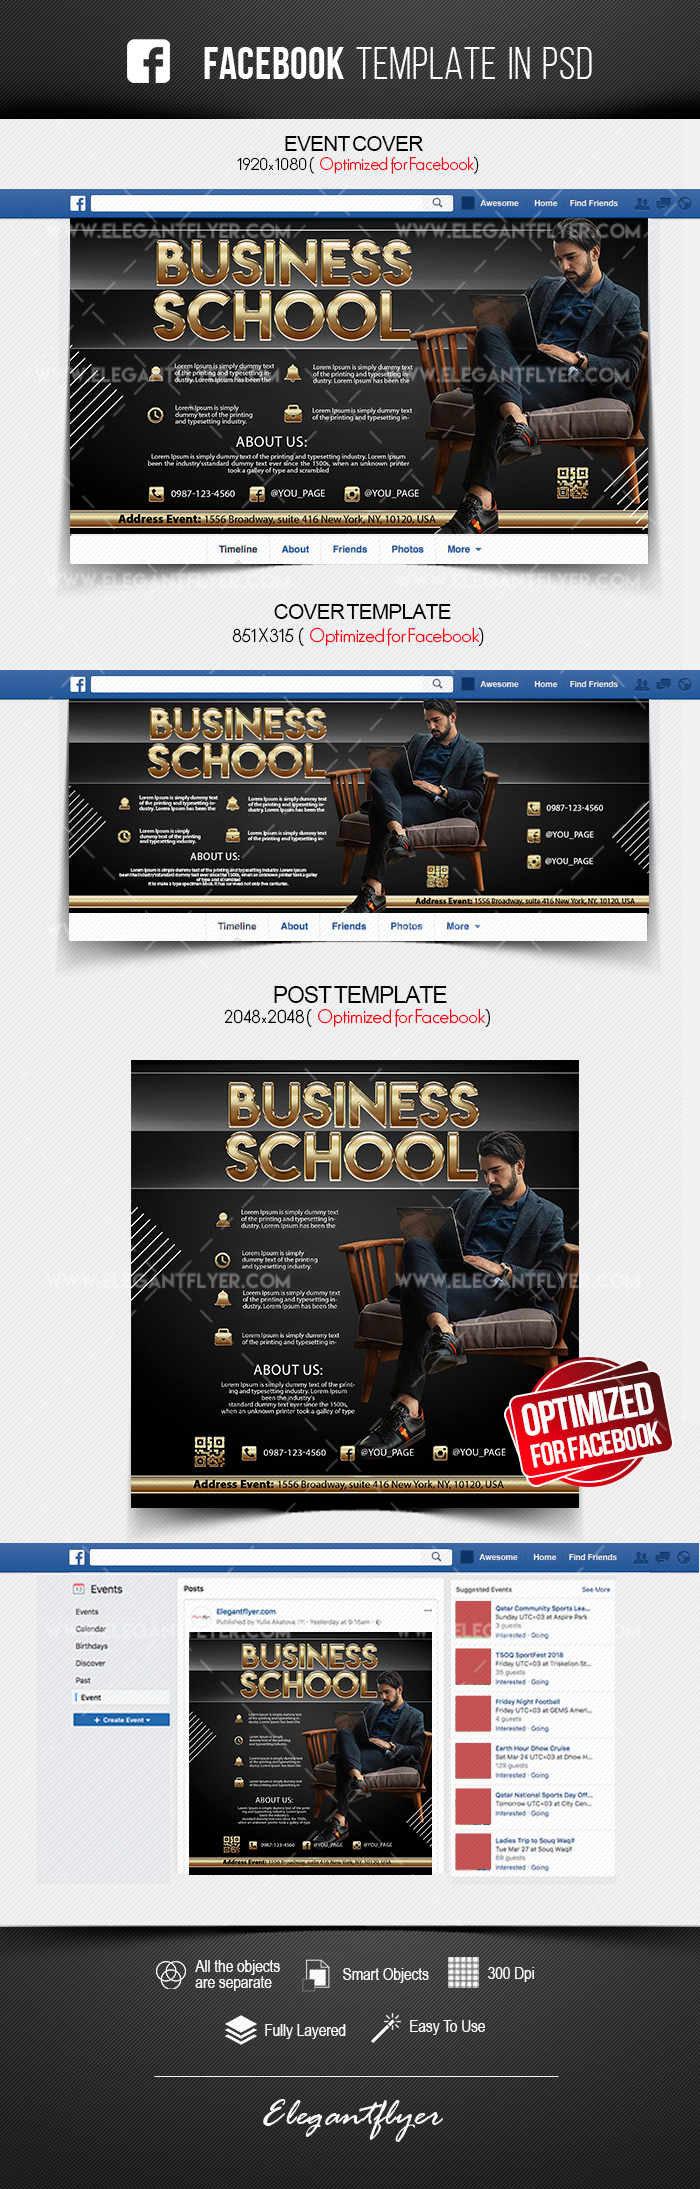 Business School – Free Facebook Cover Template in PSD + Post + Event cover